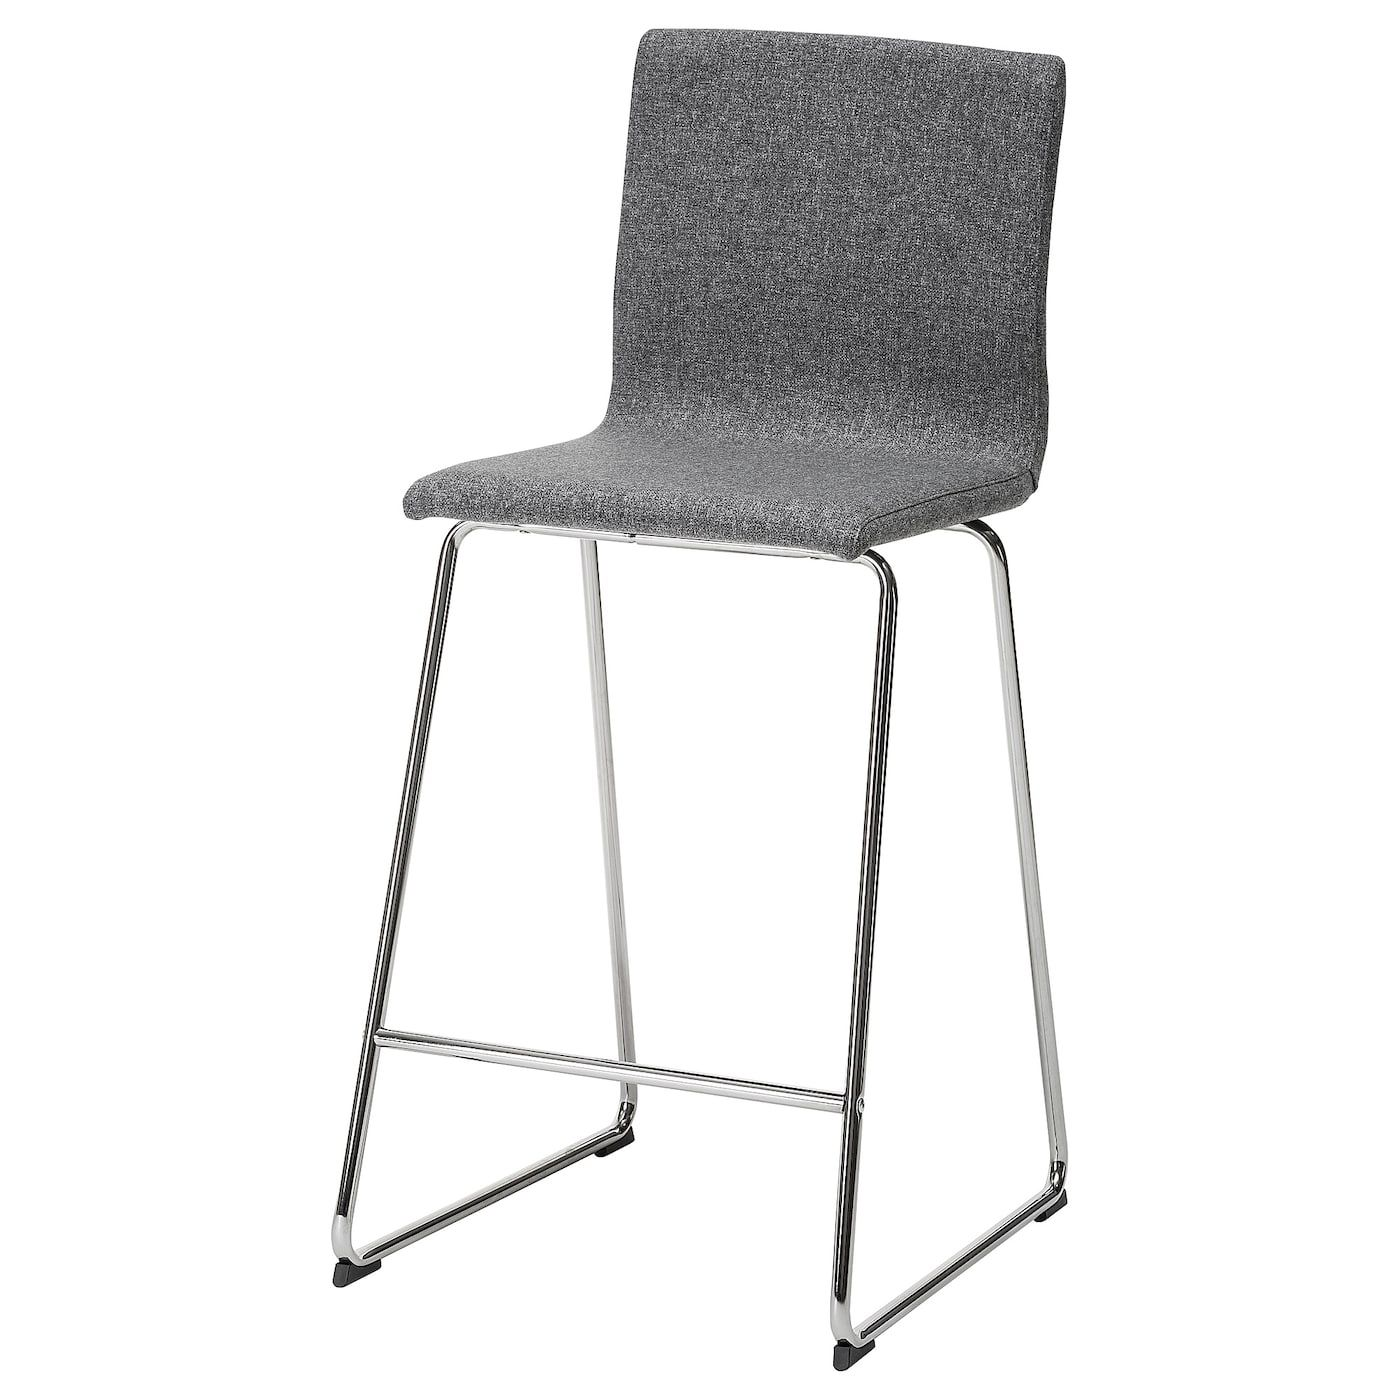 IKEA VOLFGANG Bar stool with backrest chrome plated